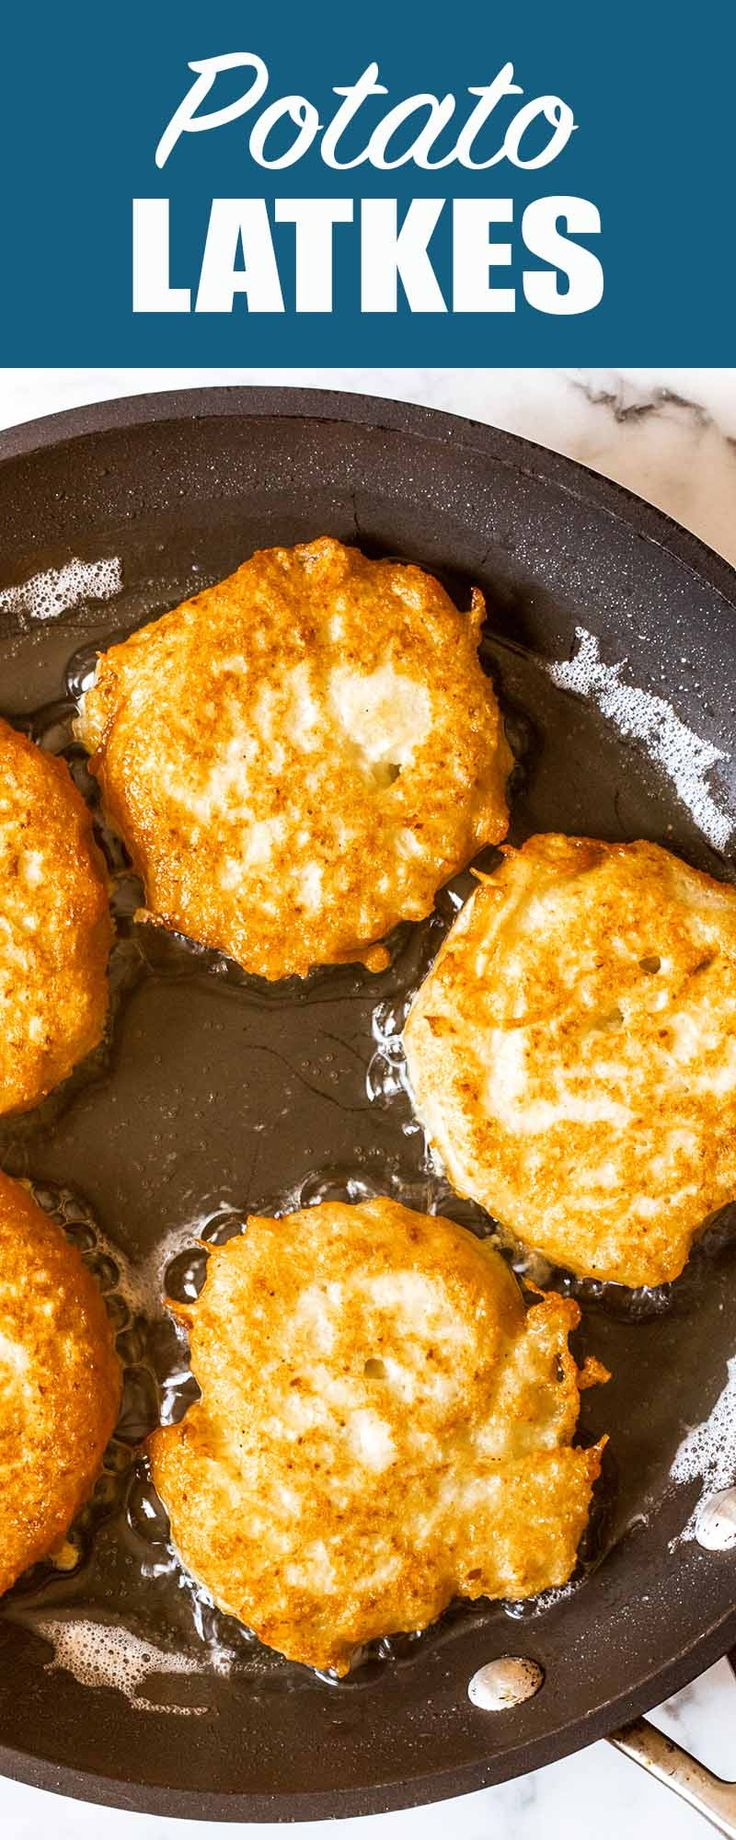 Potato Latkes! Our deli-style version is made in the food-processor. Crispy on the outside and creamy on the inside. Serve hot with plenty of sour cream and applesauce!